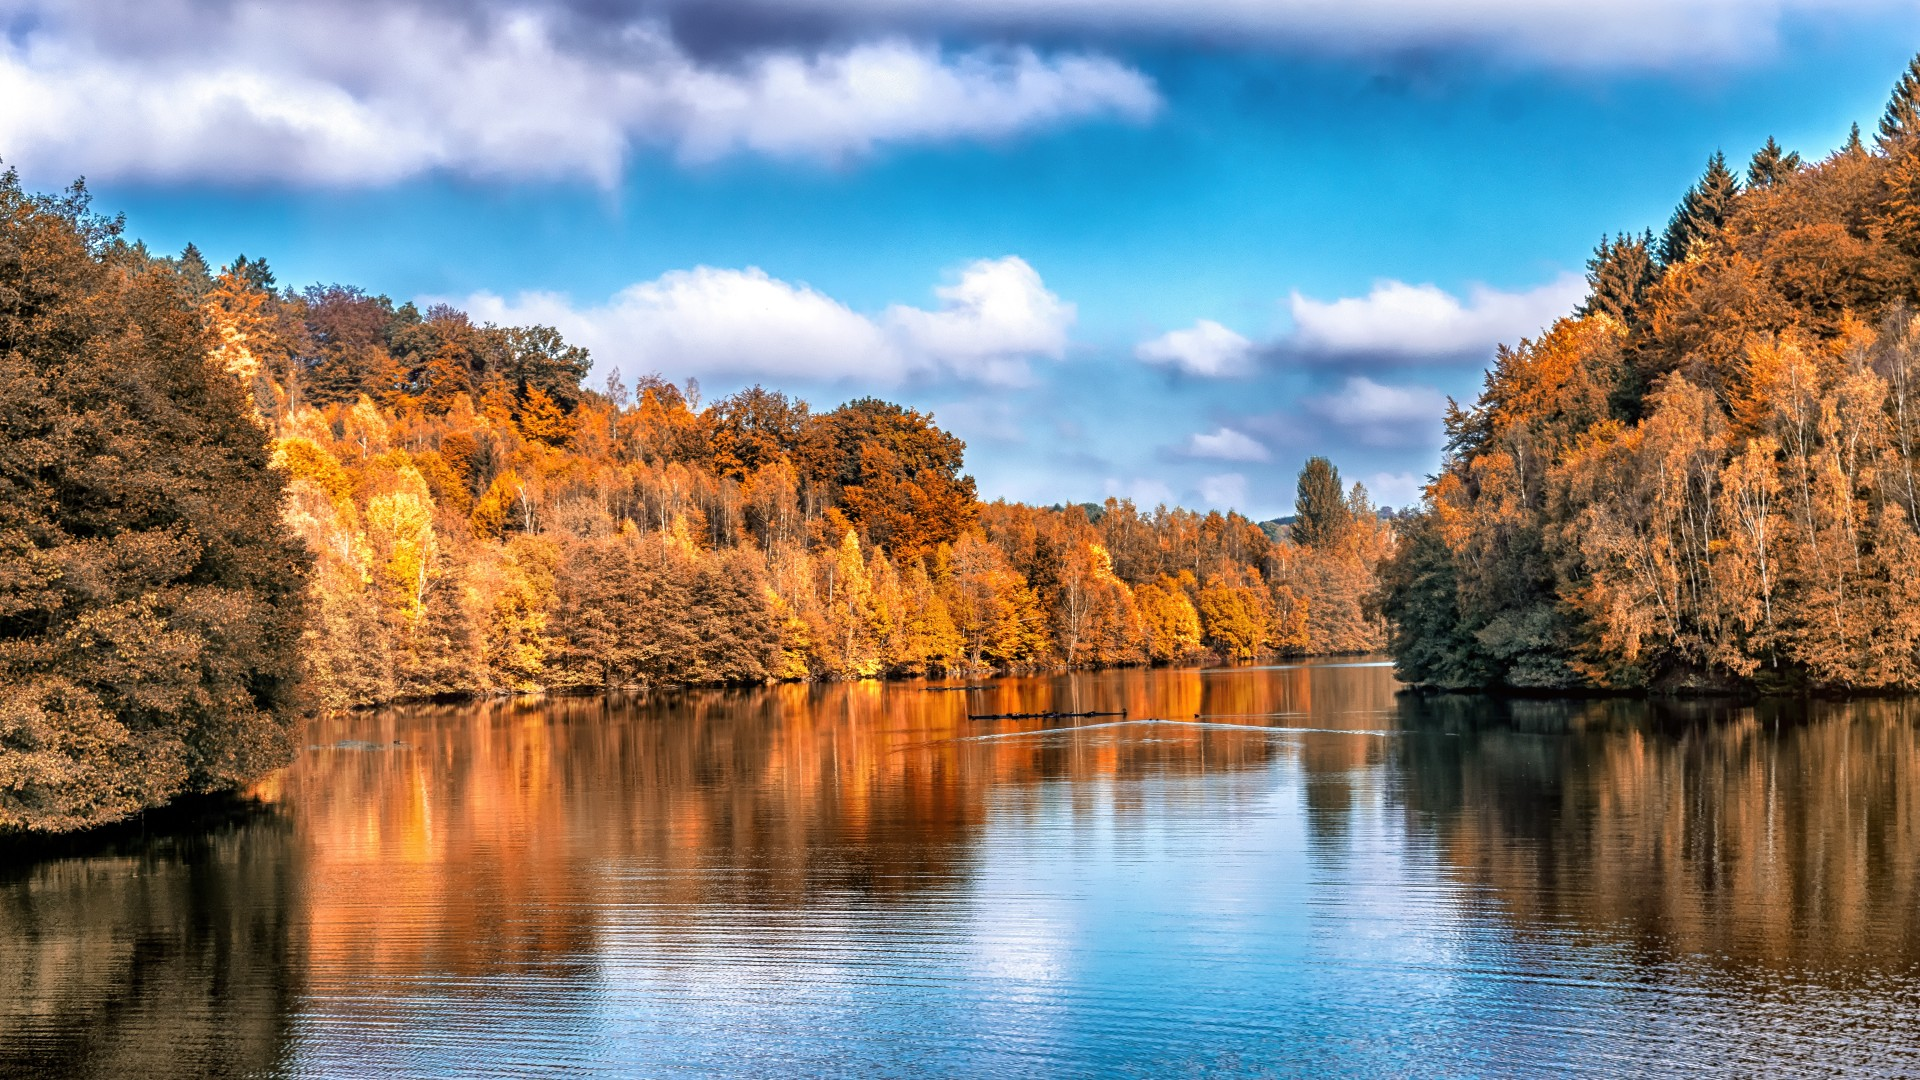 Hd Wallpapers 1080p Widescreen Cars Free Download Wallpaper Autumn Lake Forest 5k Nature 15987